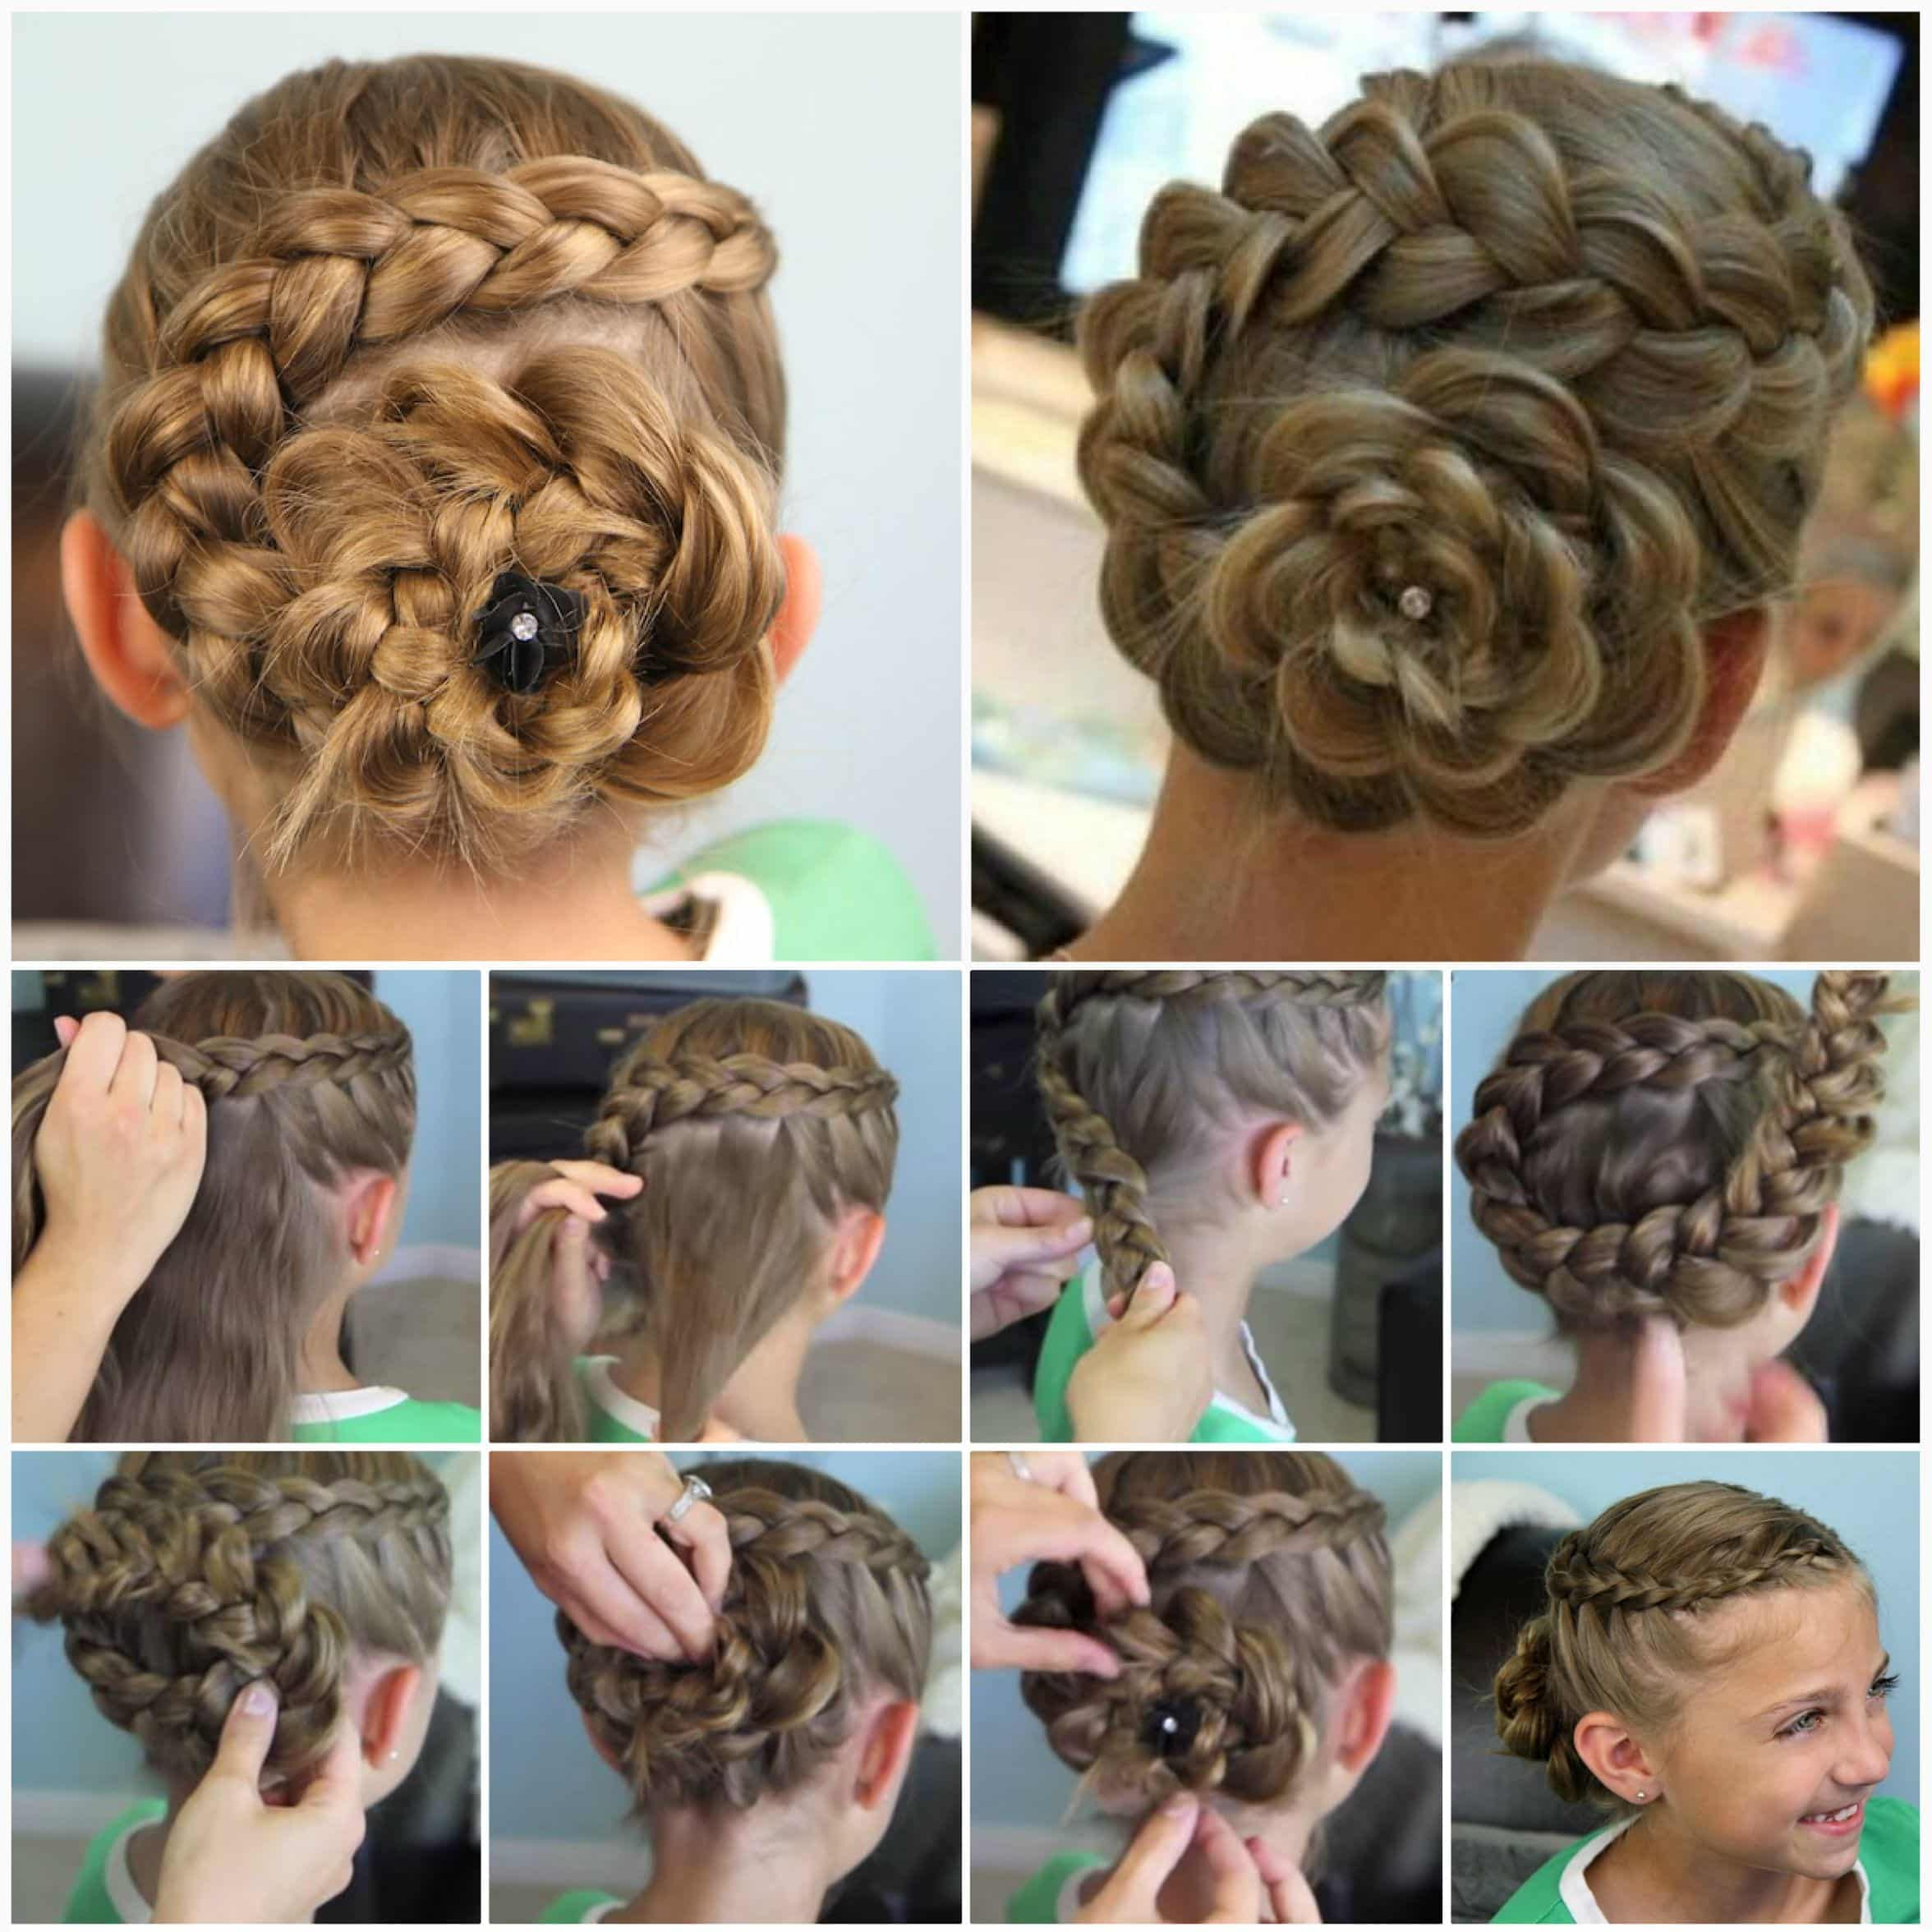 Groovy 2016 Eid Hairstyles 20 Latest Girls Hairstyles For Eid Hairstyle Inspiration Daily Dogsangcom